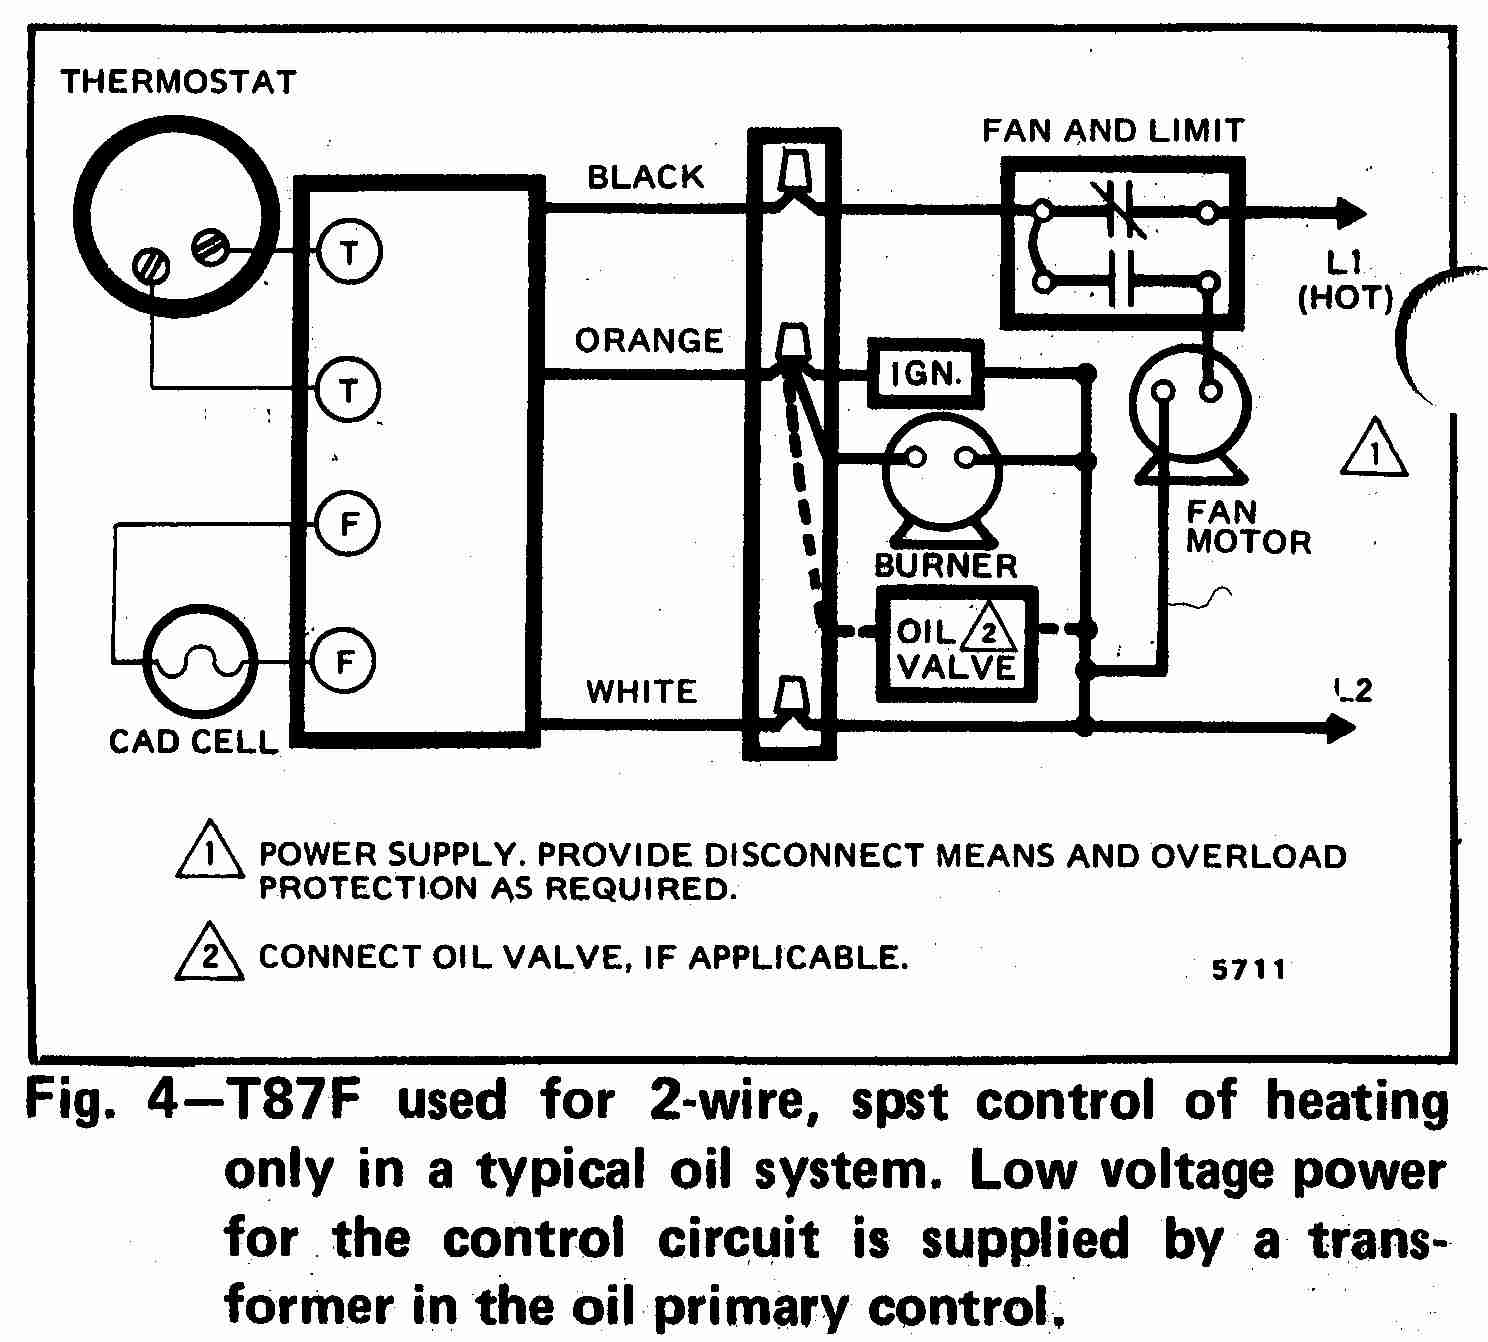 TT_T87F_0002_2W_DJF room thermostat wiring diagrams for hvac systems electric space heater wiring diagram at readyjetset.co